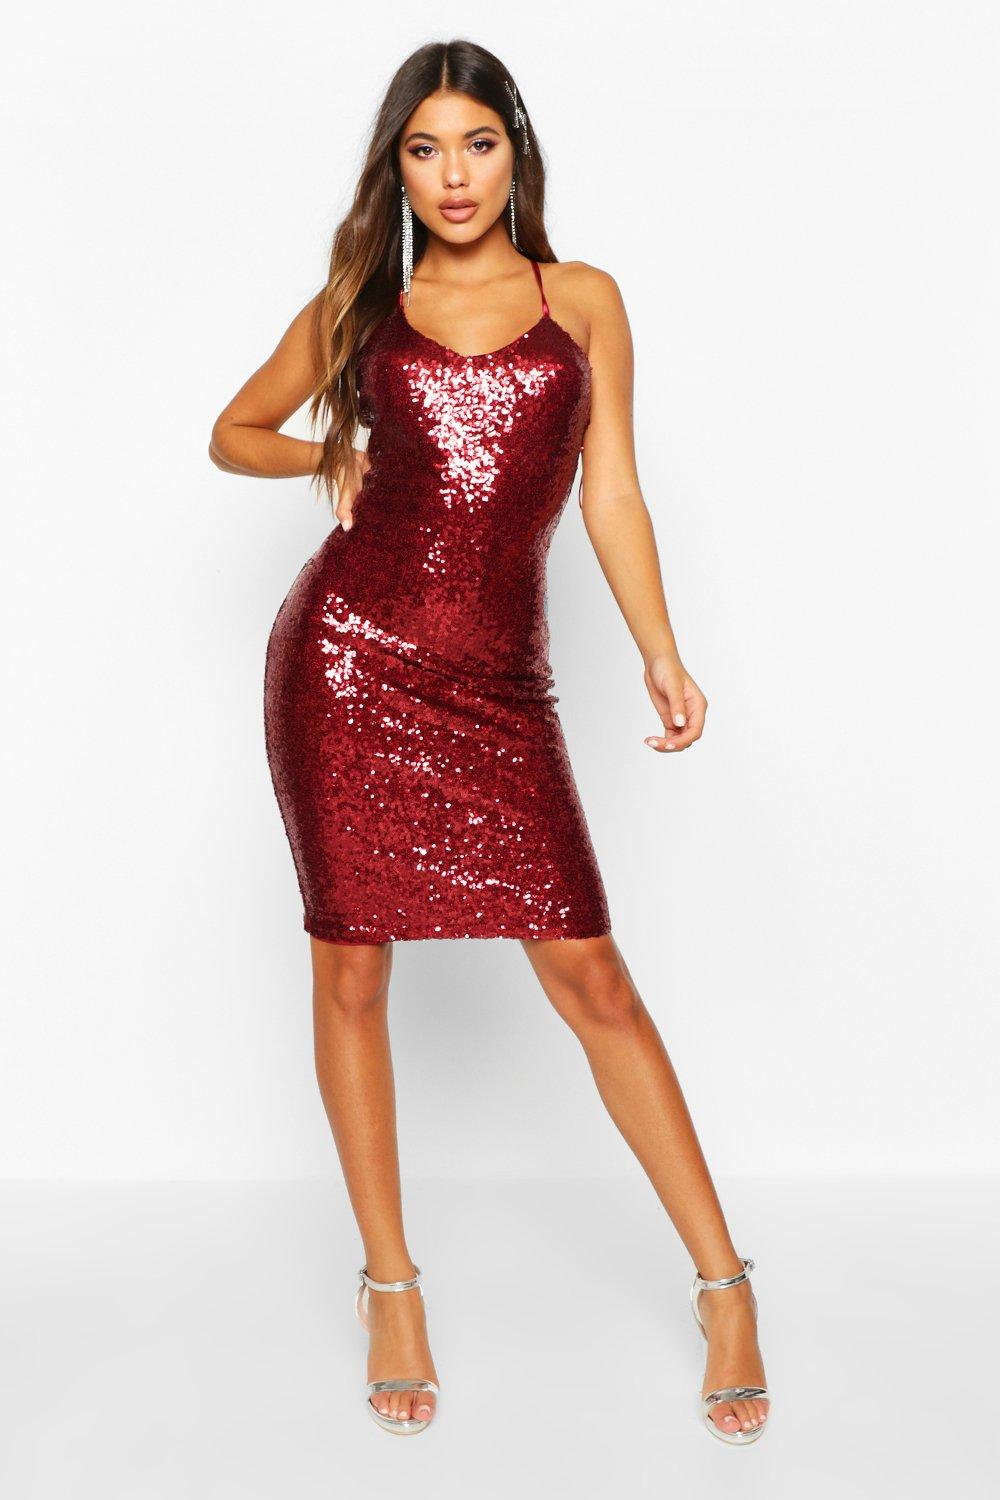 Find the latest trends and styles in women's party dresses at Urban Outfitters. We have the perfect dress for your next formal event, holiday dance or any party. Receive free shipping for purchases of $50 or more on US orders.